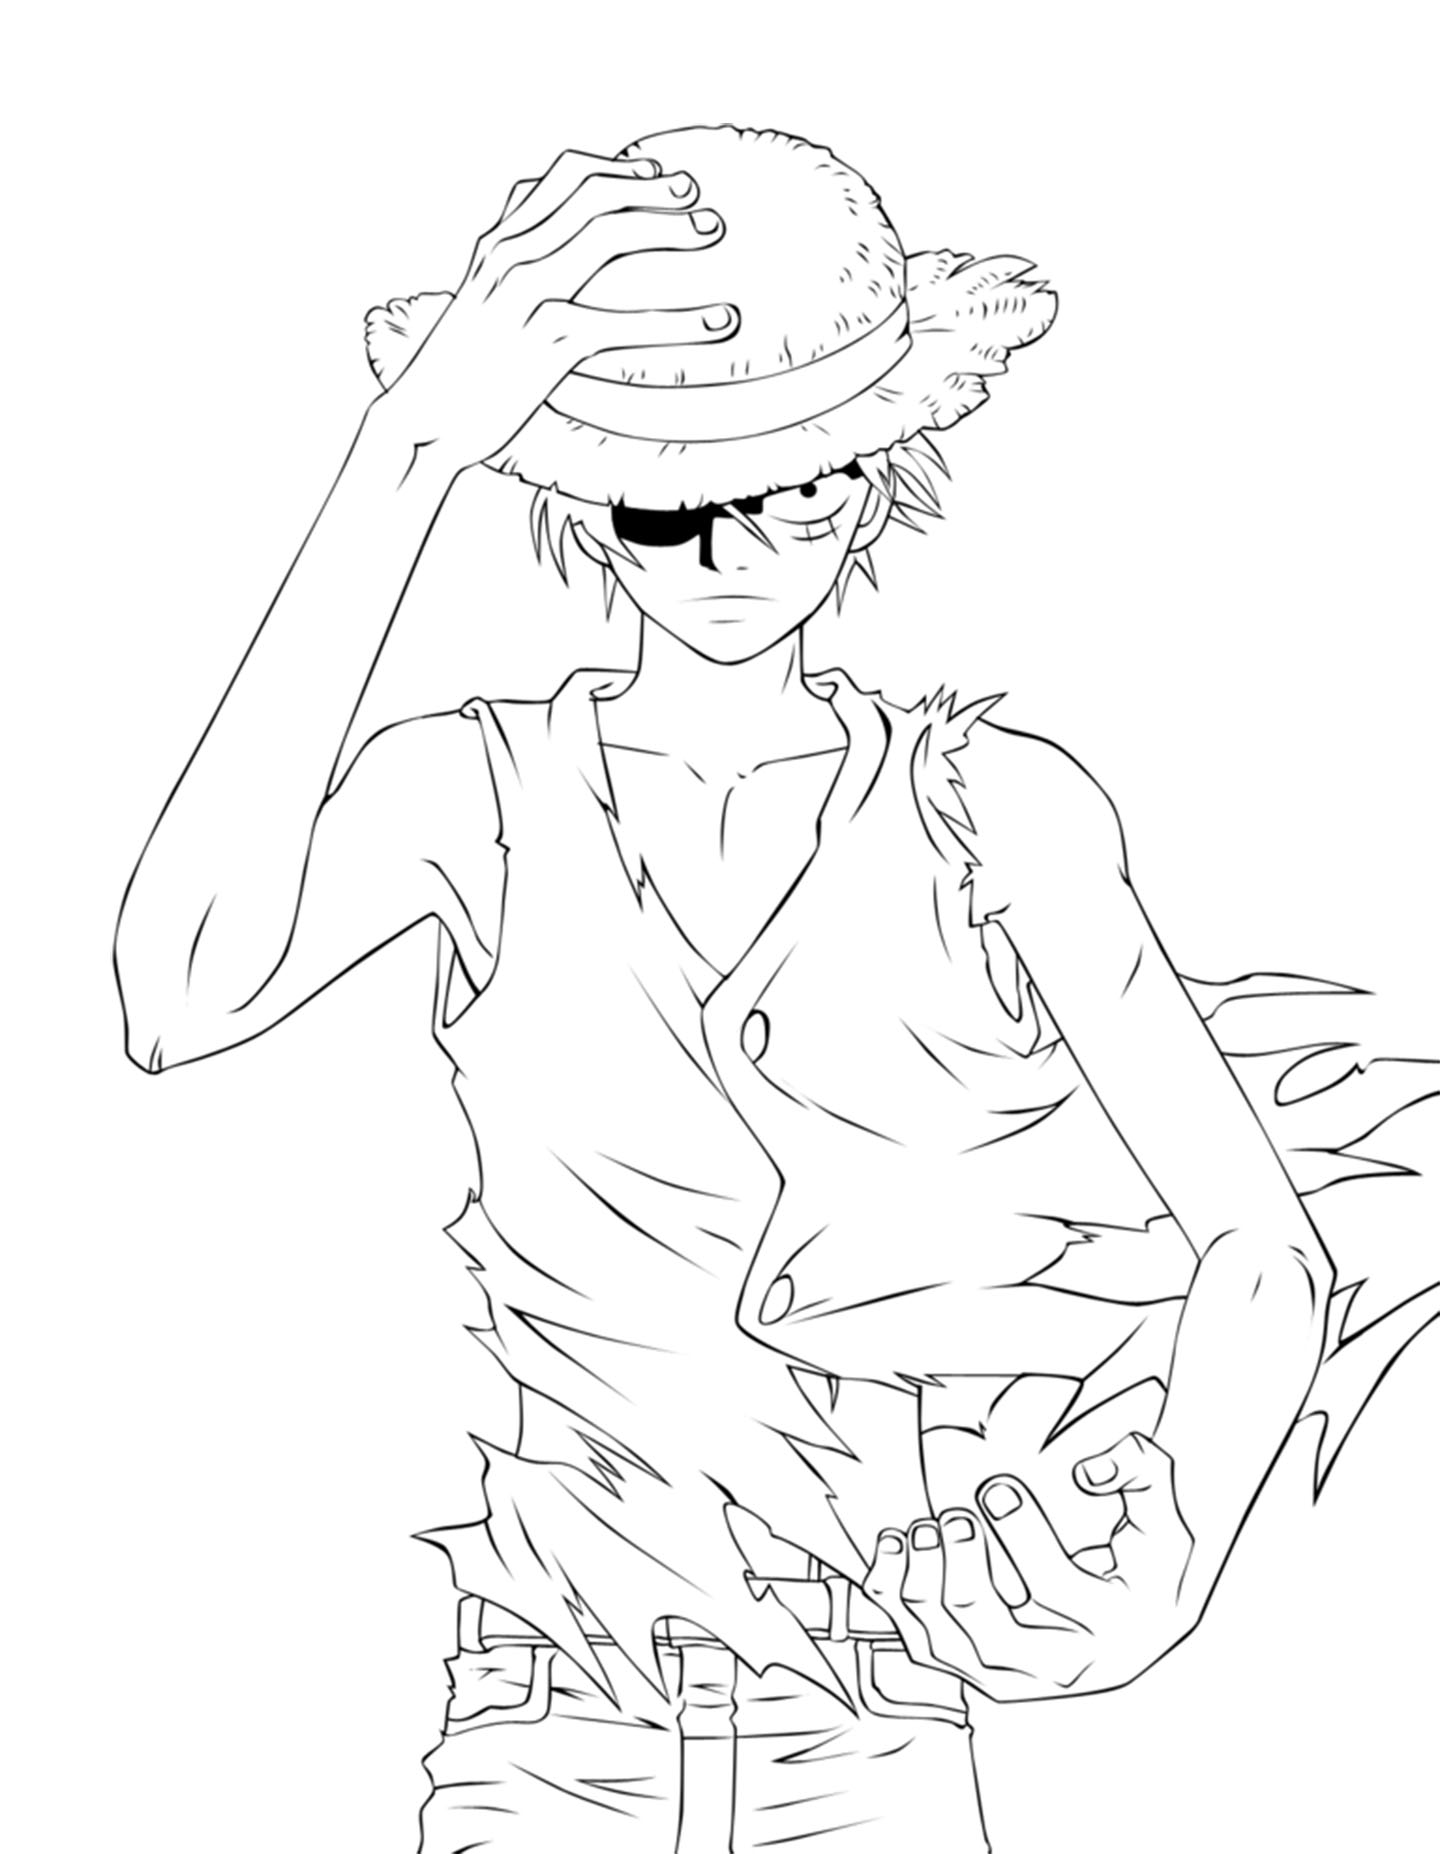 Simple One Piece coloring page to download for free